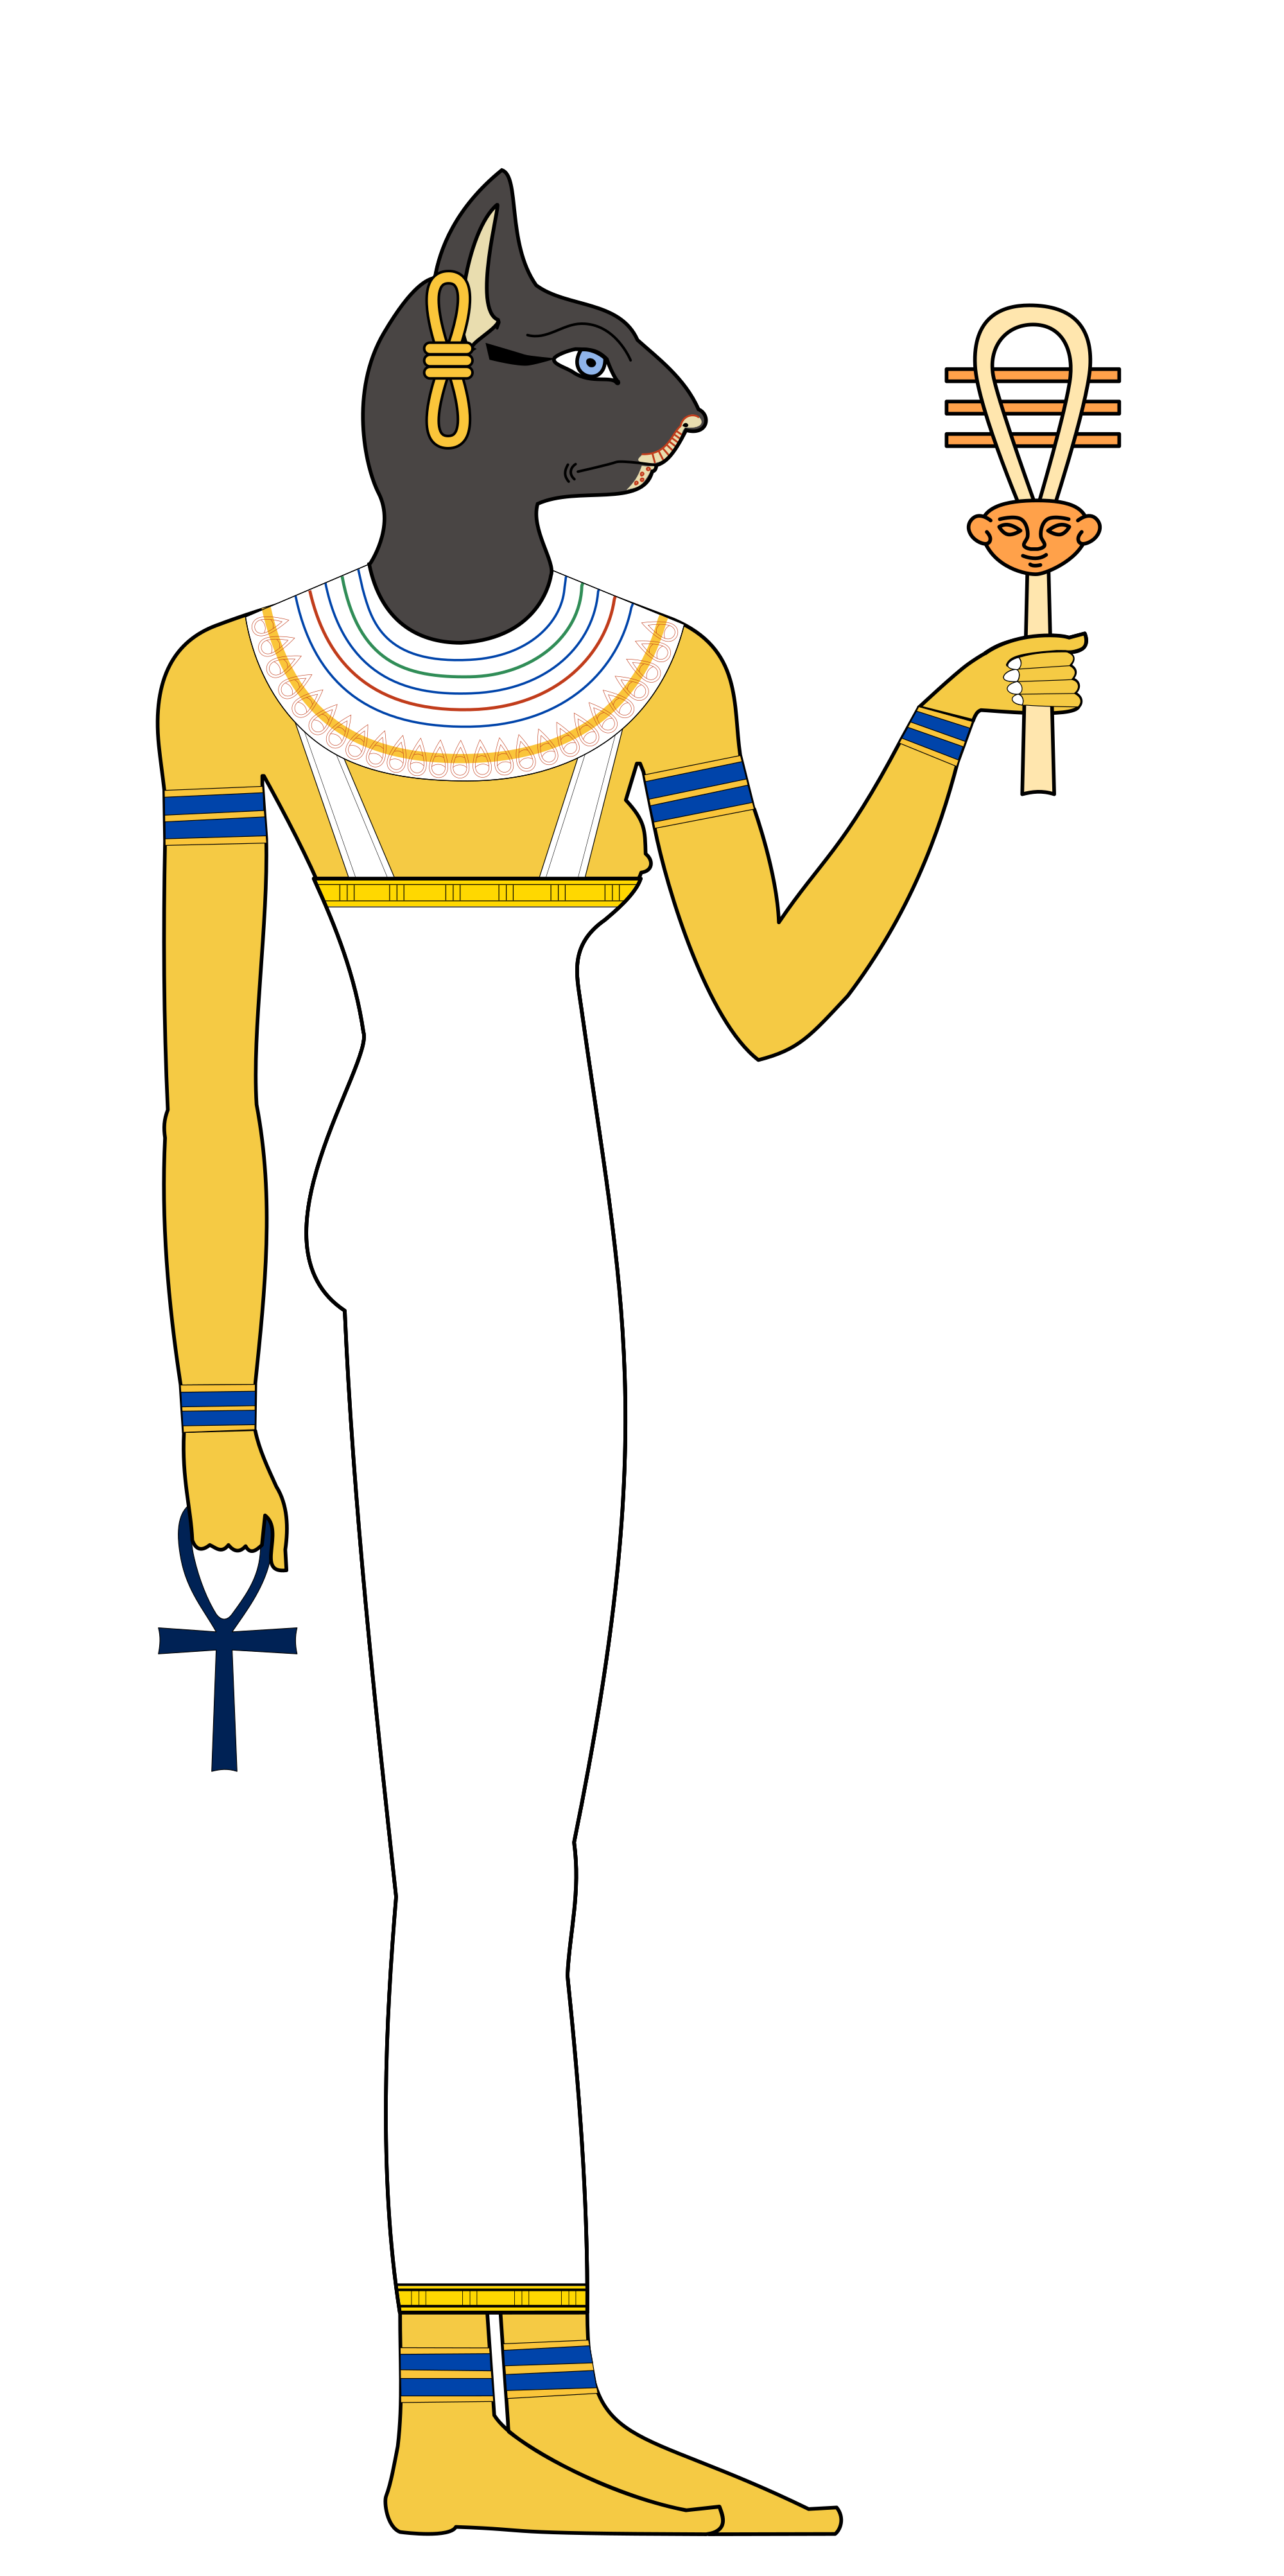 Bastet drawing goddess. File mirror svg wikimedia